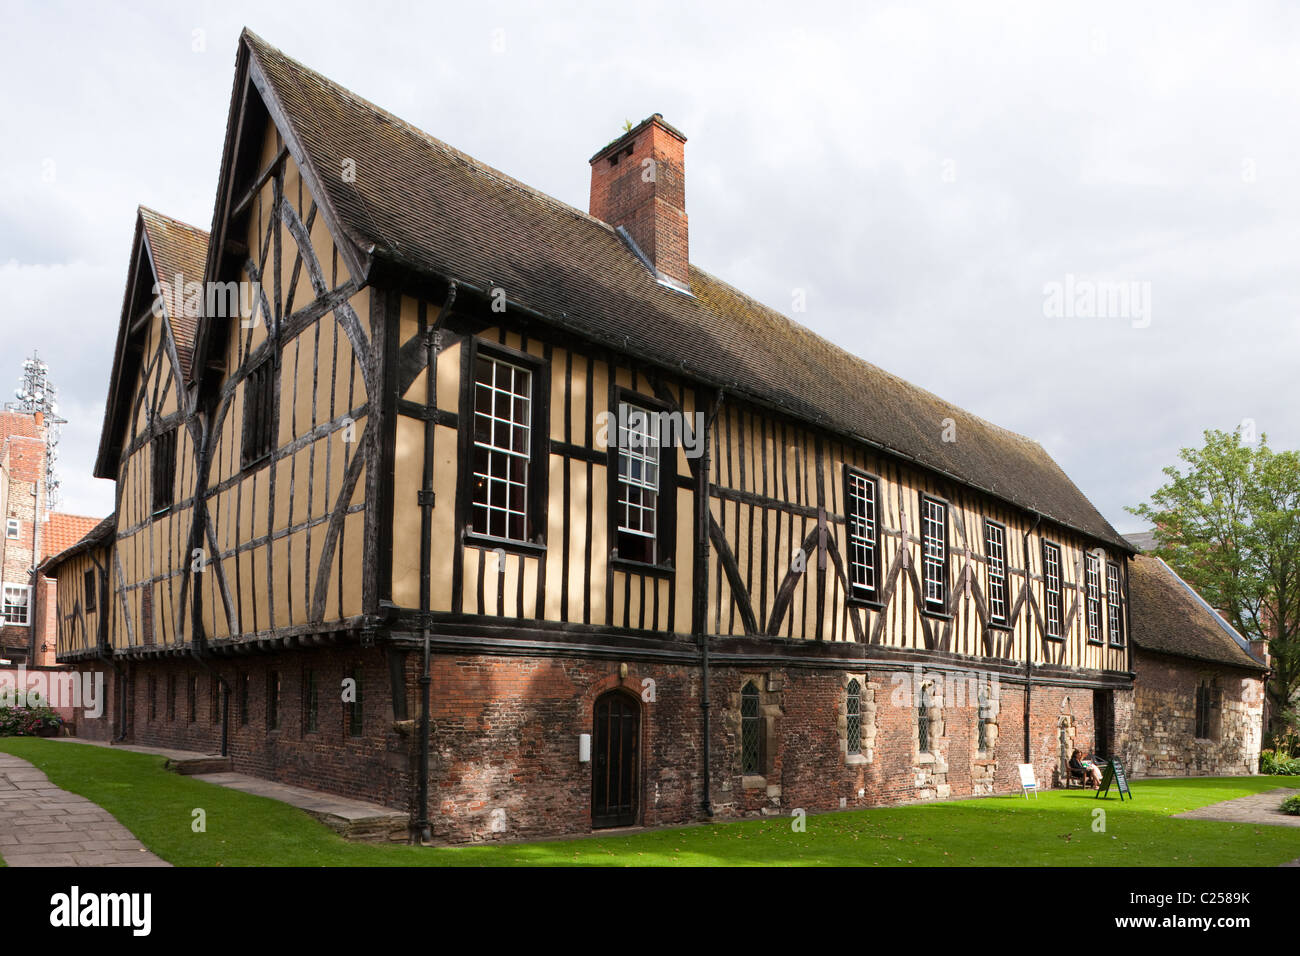 Exterior of the Merchant Adventurers House in York City, East Yorkshire - Stock Image